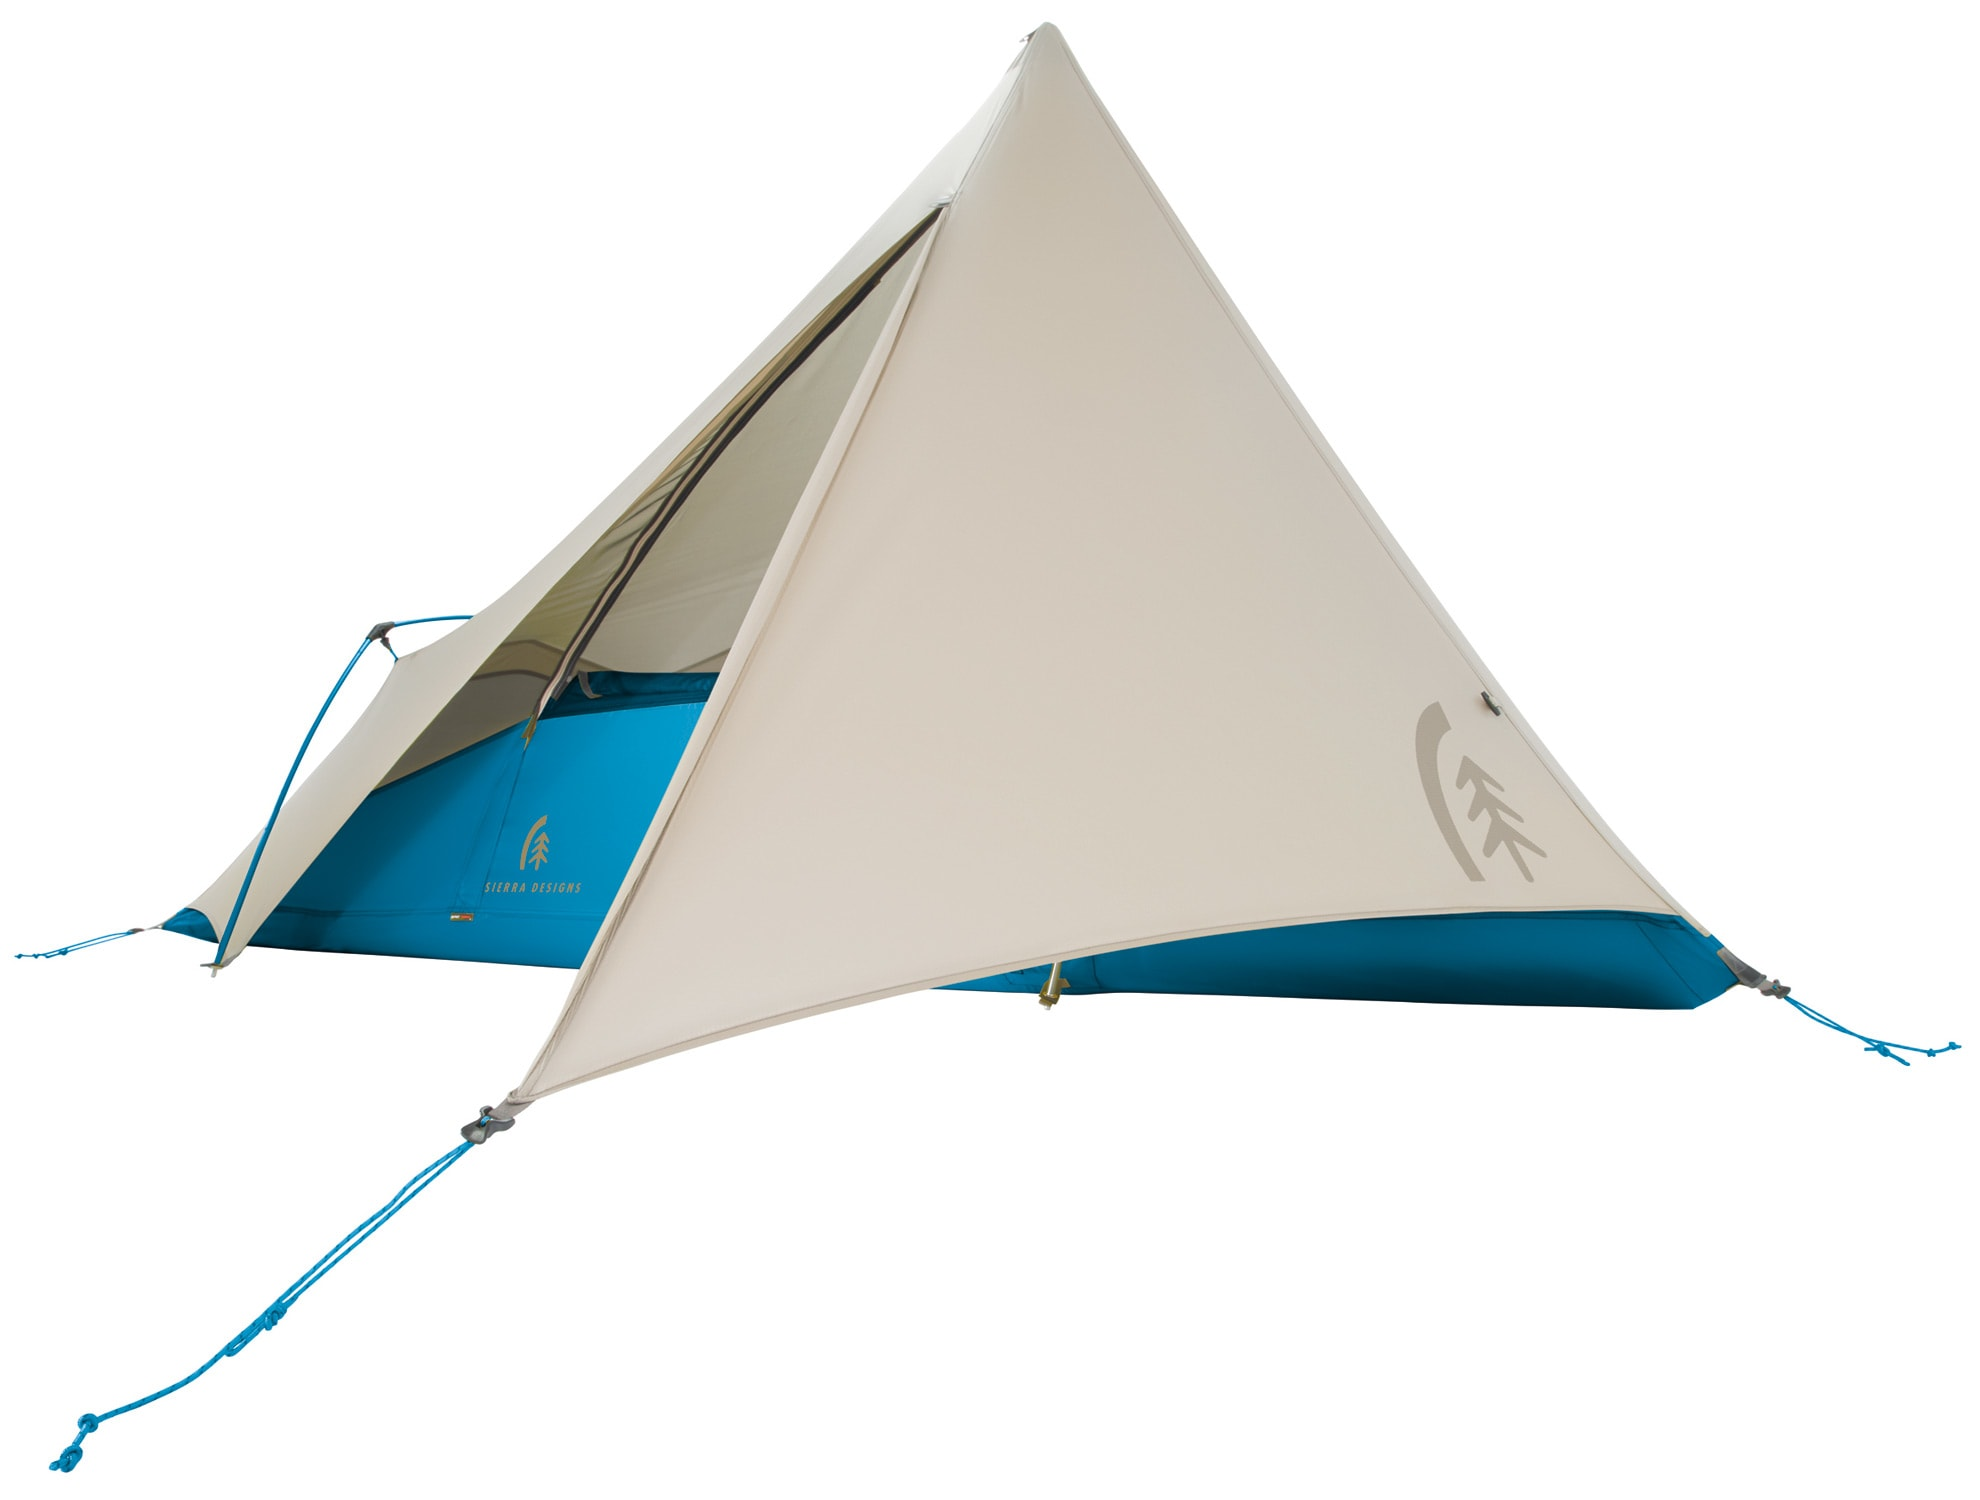 Sierra Designs Flashlight 2 Tent - thumbnail 4  sc 1 st  The House & On Sale Sierra Designs Flashlight 2 Tent up to 55% off